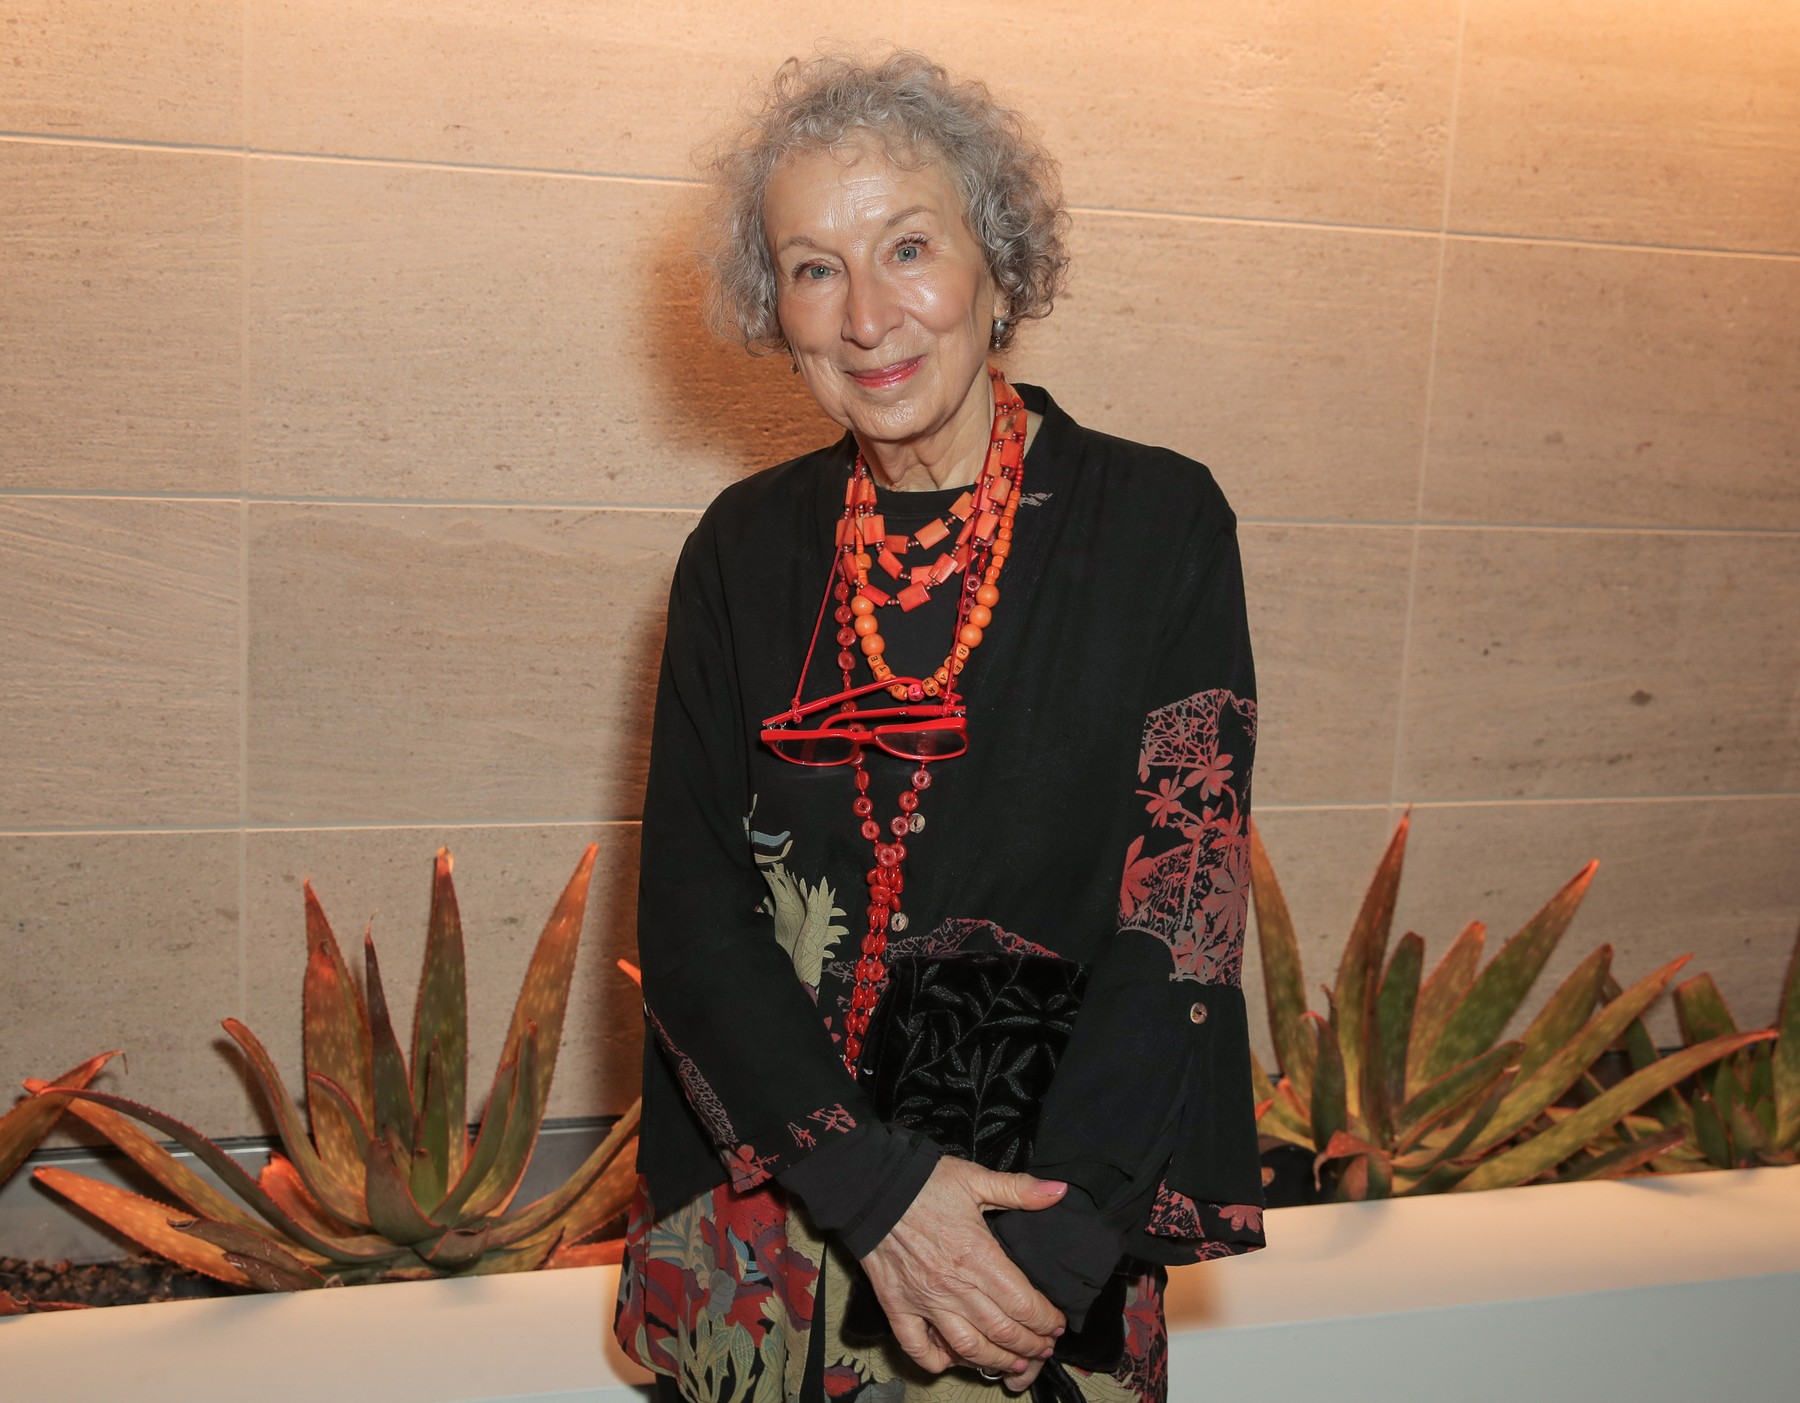 Margaret Atwood Make Equality Reality Gala, Inside, Los Angeles, USA - 03 Dec 2018, Image: 400189567, License: Rights-managed, Restrictions: , Model Release: no, Credit line: Profimedia, Shutterstock Editorial